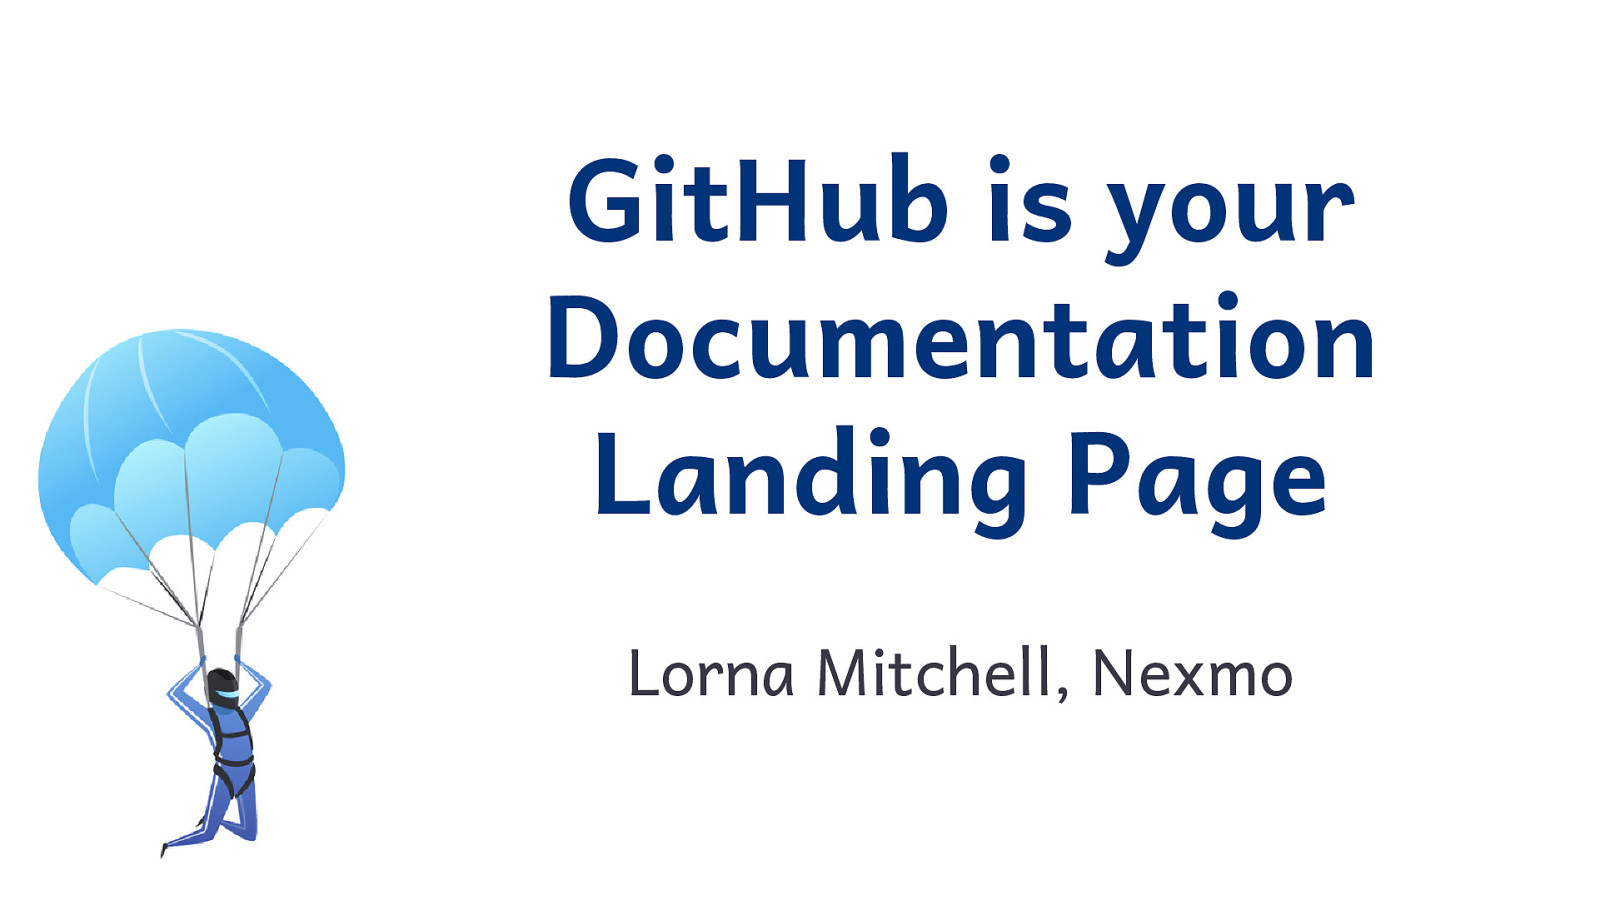 GitHub is Your Documentation Landing Page